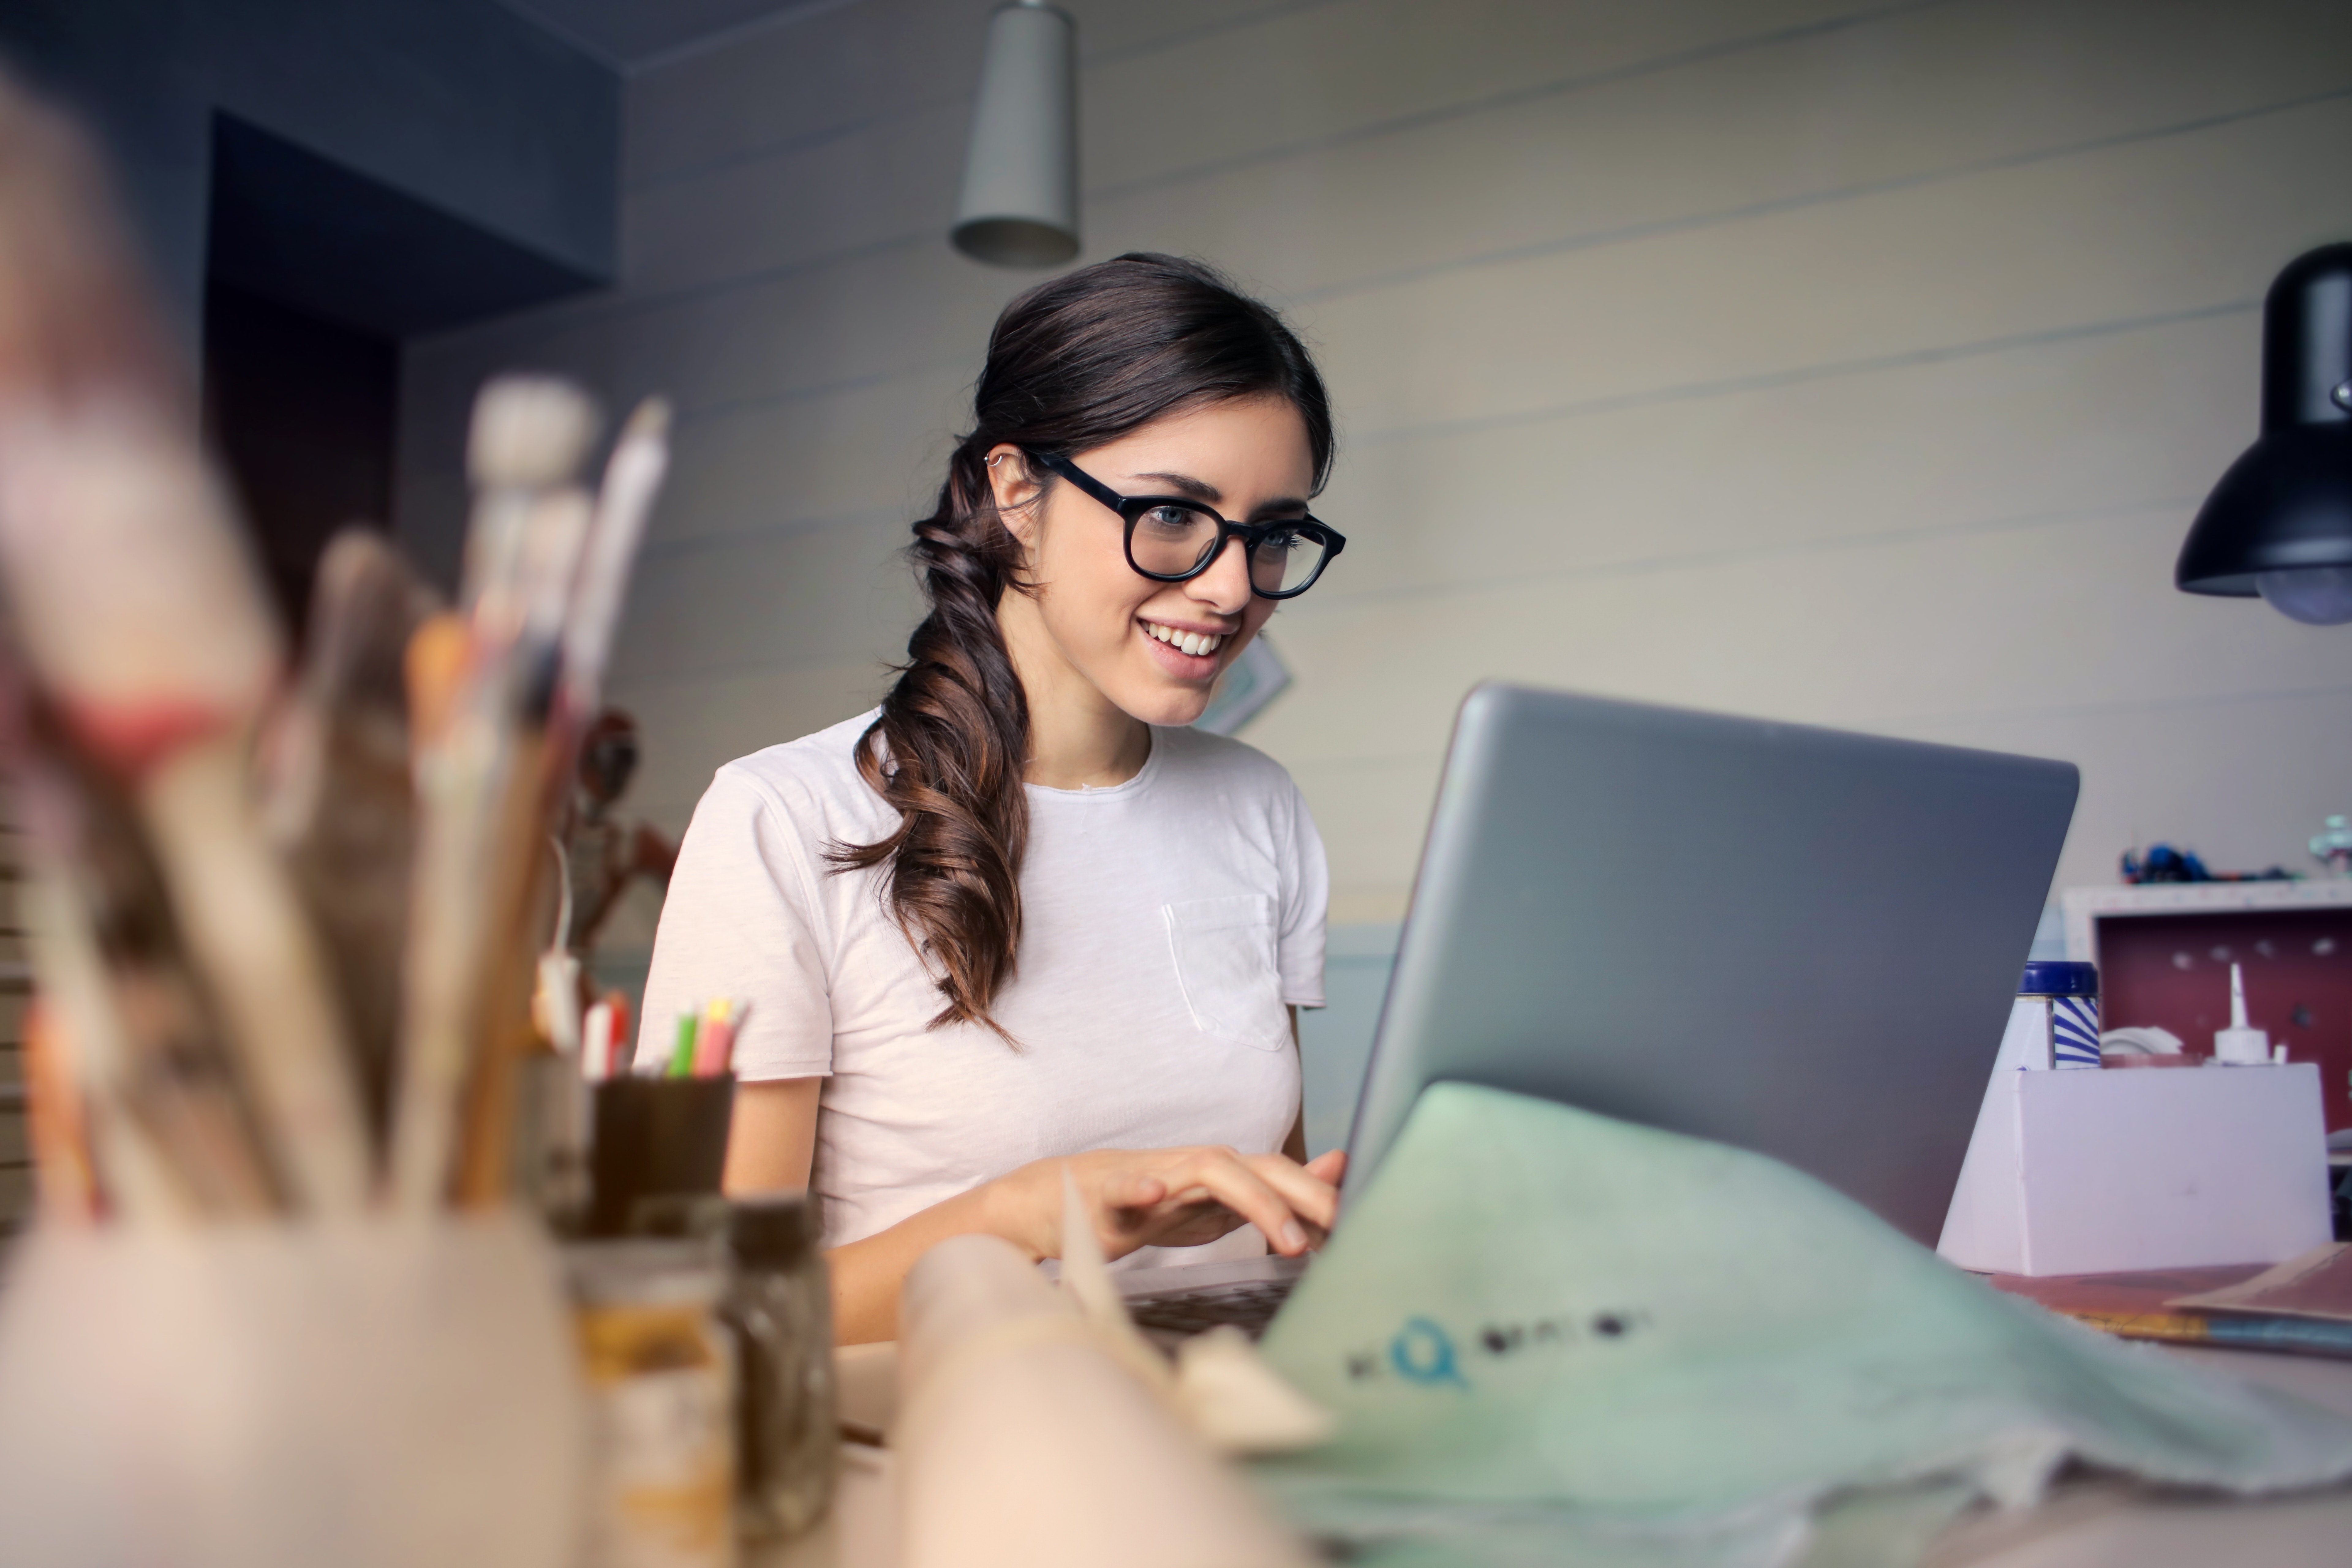 Business Analyst (Non Certified) - Starting August 8, 2020!